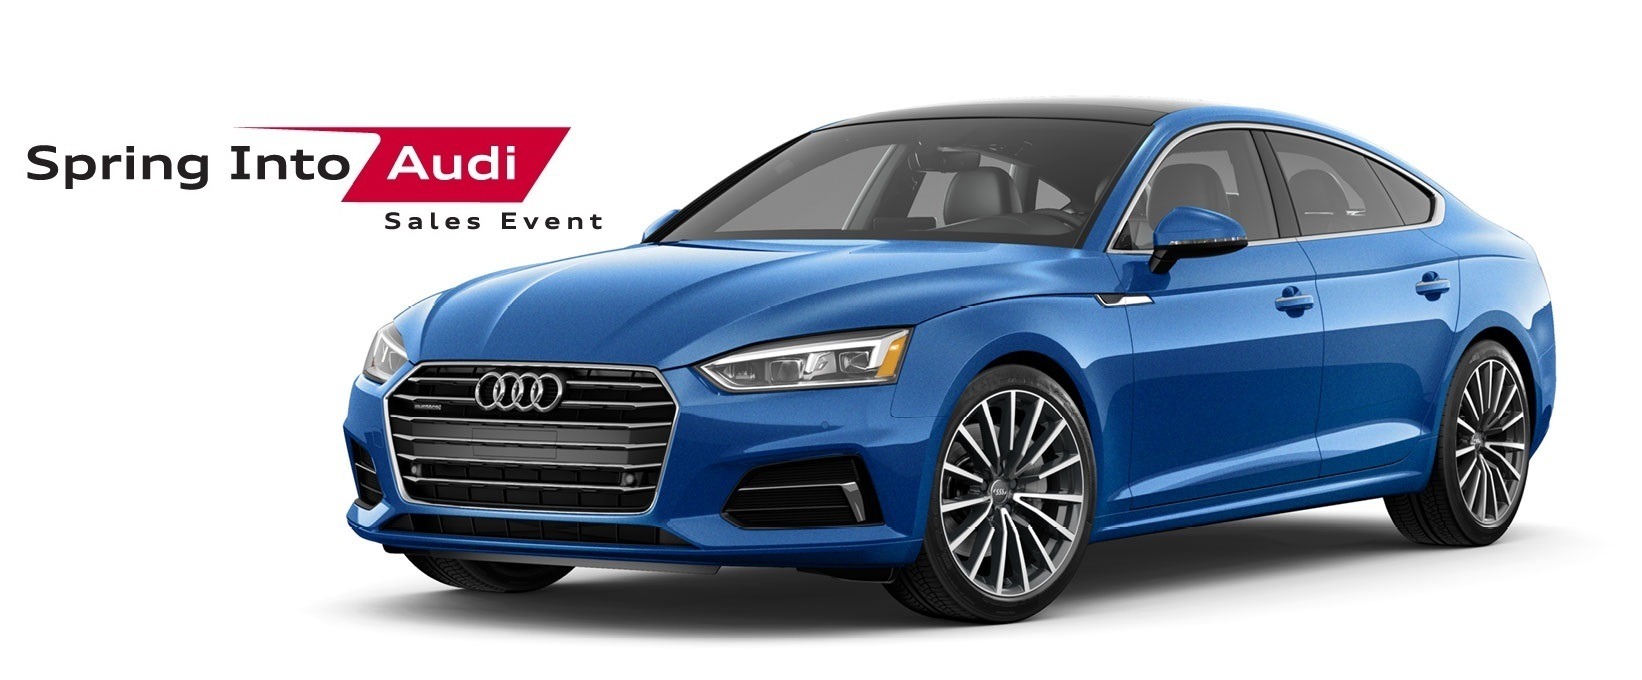 Spring Into Audi Sales Event – A5/S5